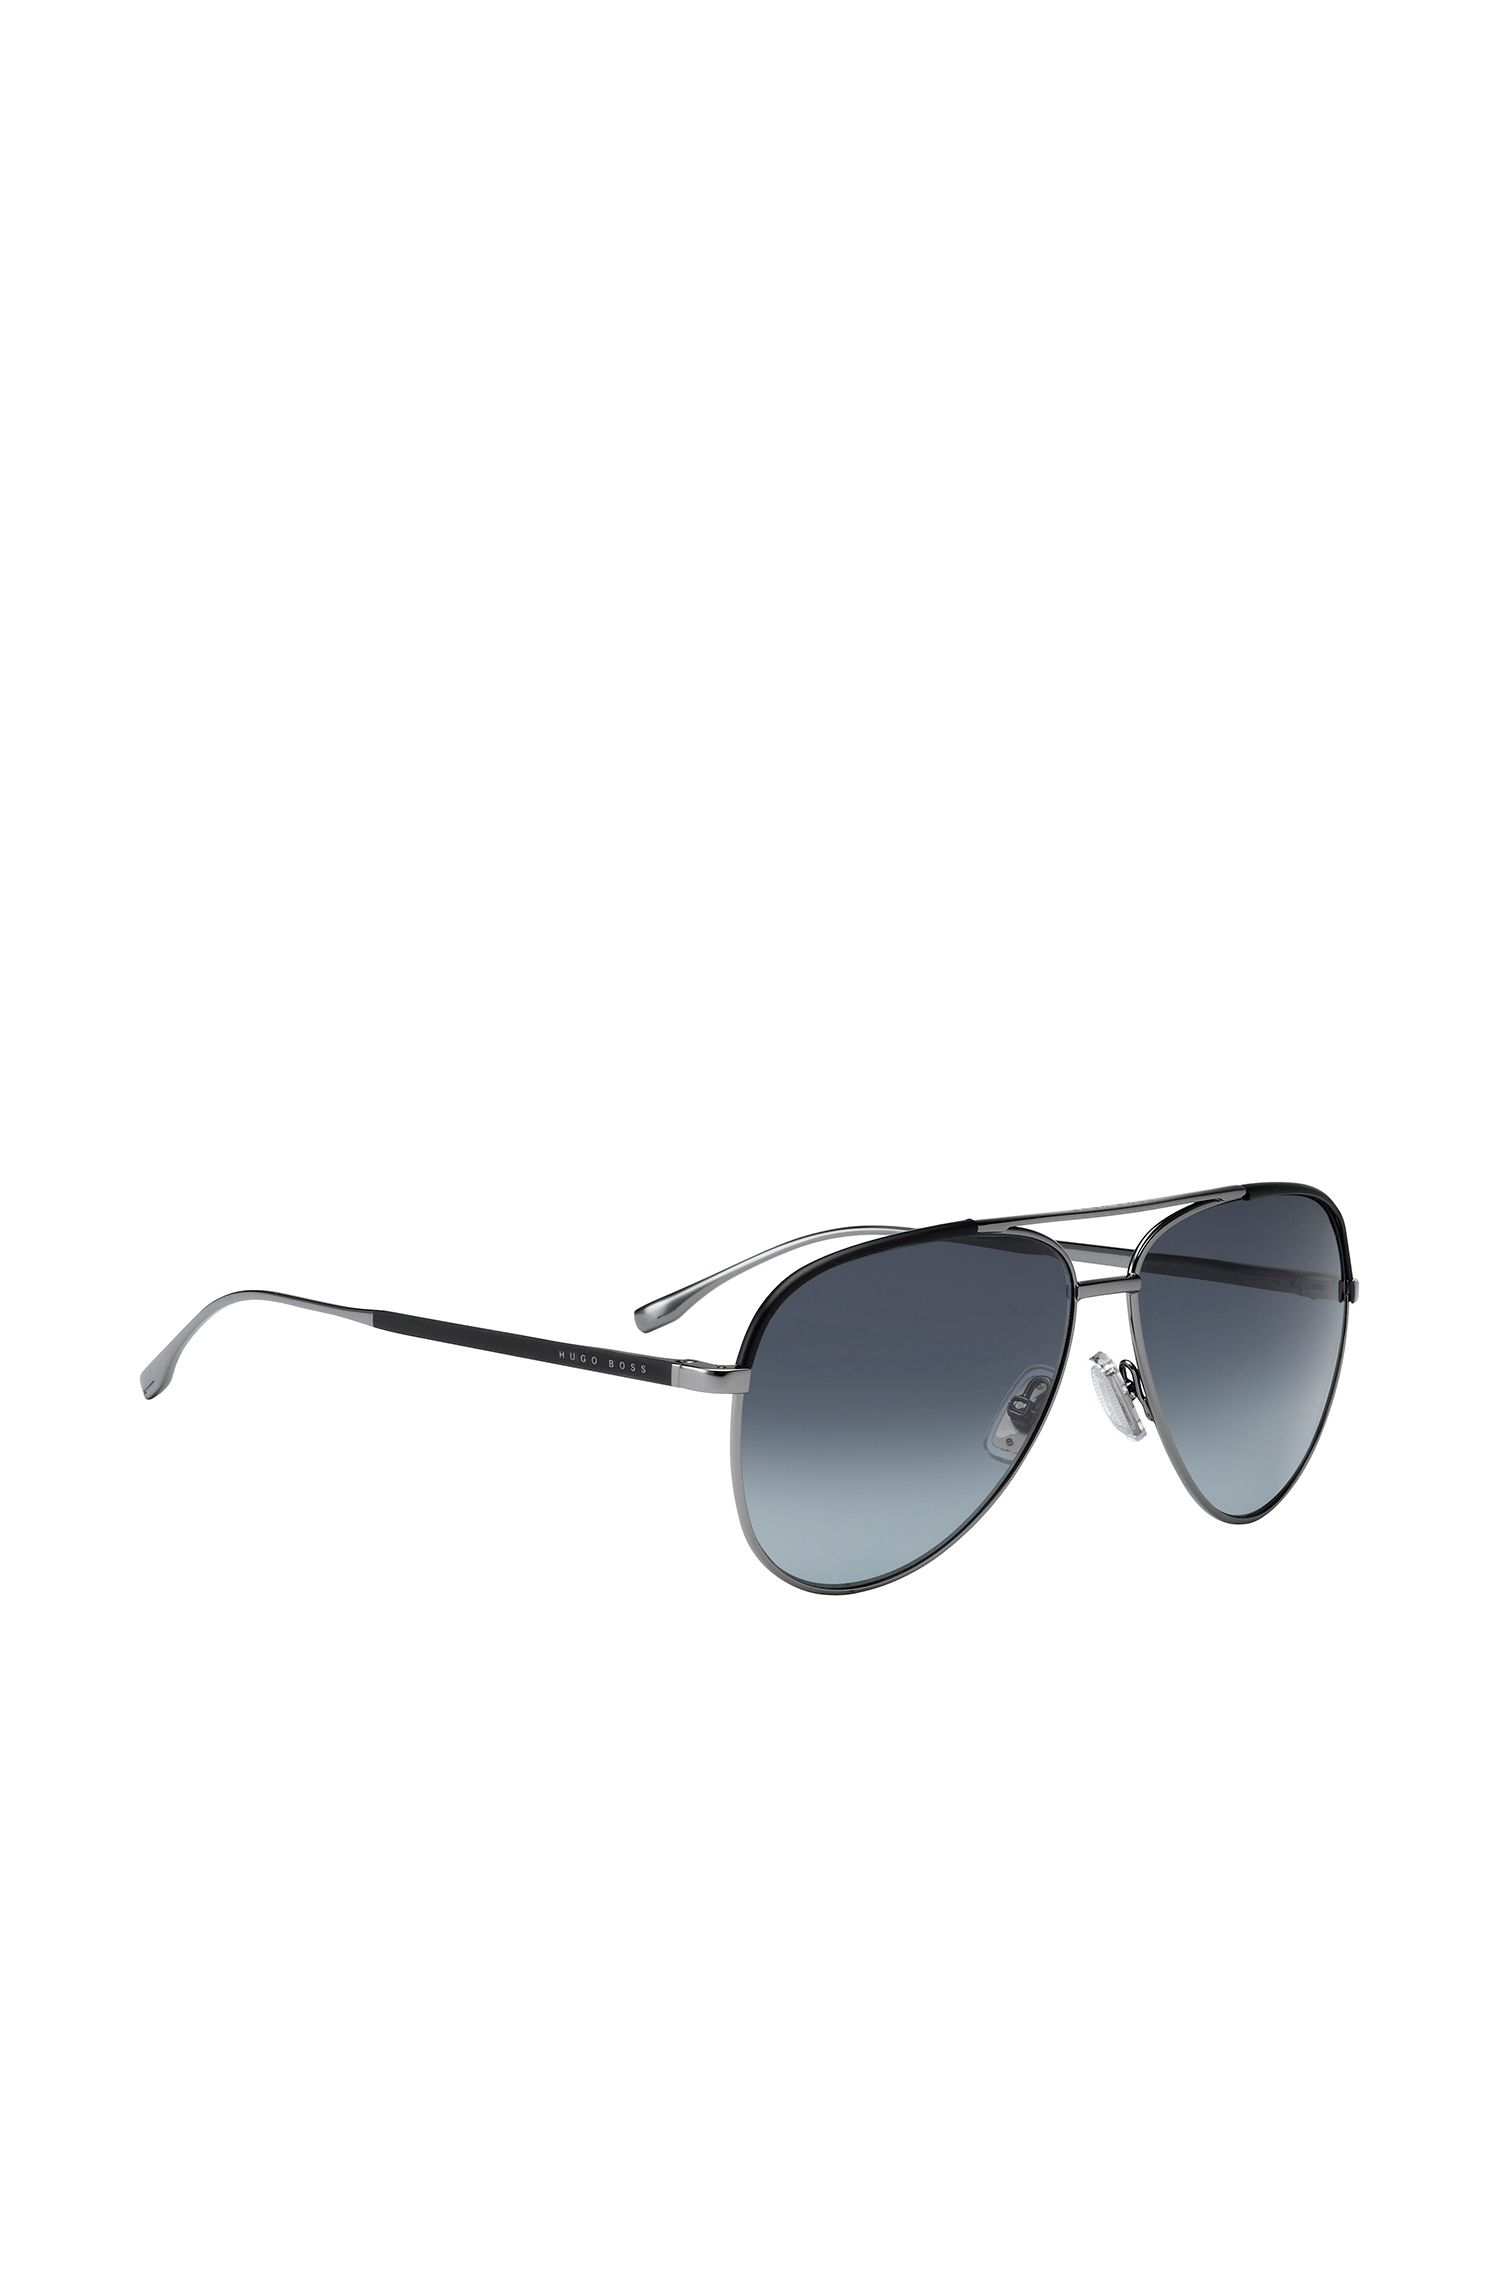 'BOSS 0782S' | Gradient Lens Ruthenium Aviators, Assorted-Pre-Pack